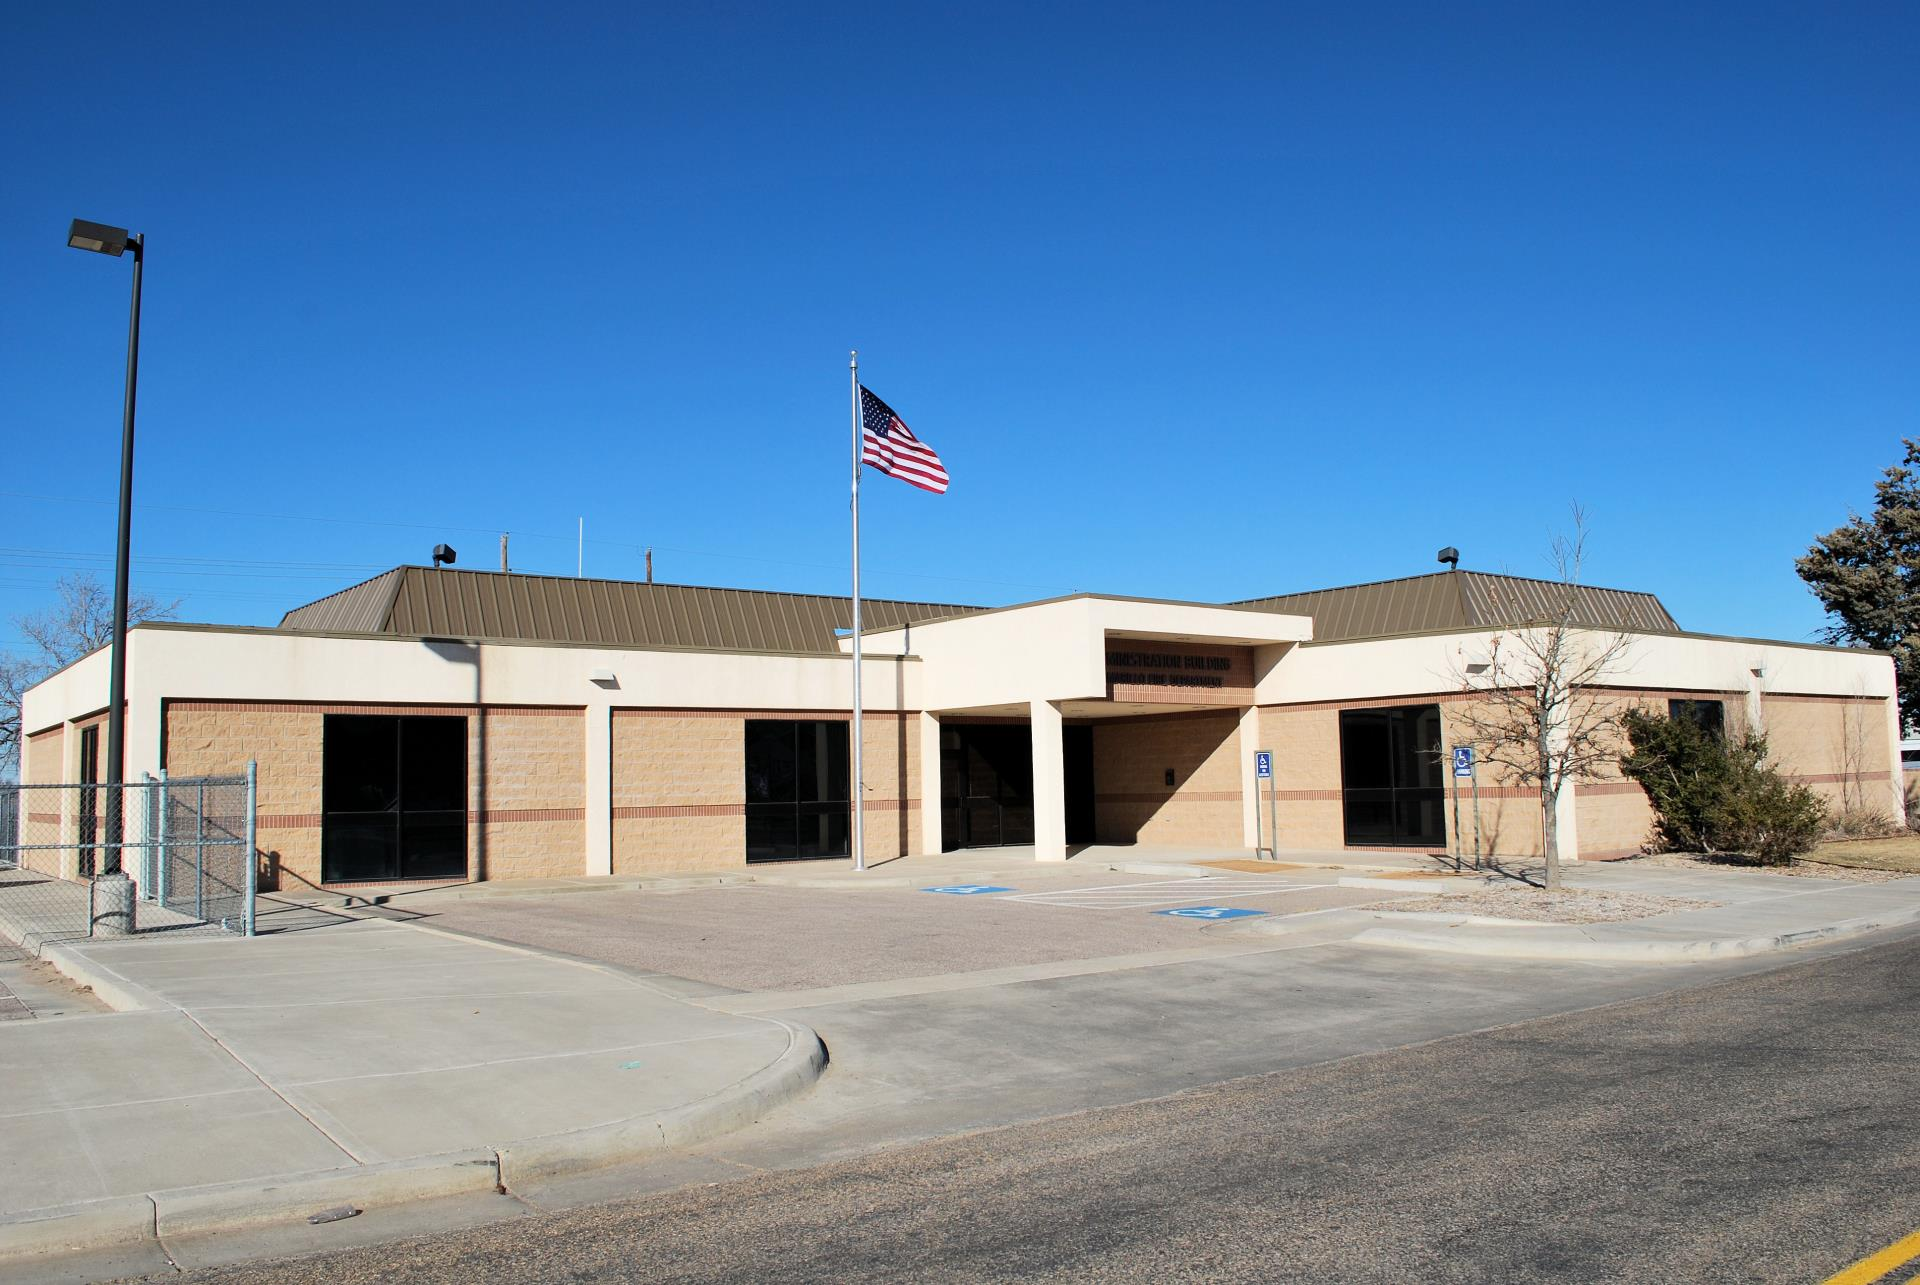 Fire stations city of amarillo tx administration building malvernweather